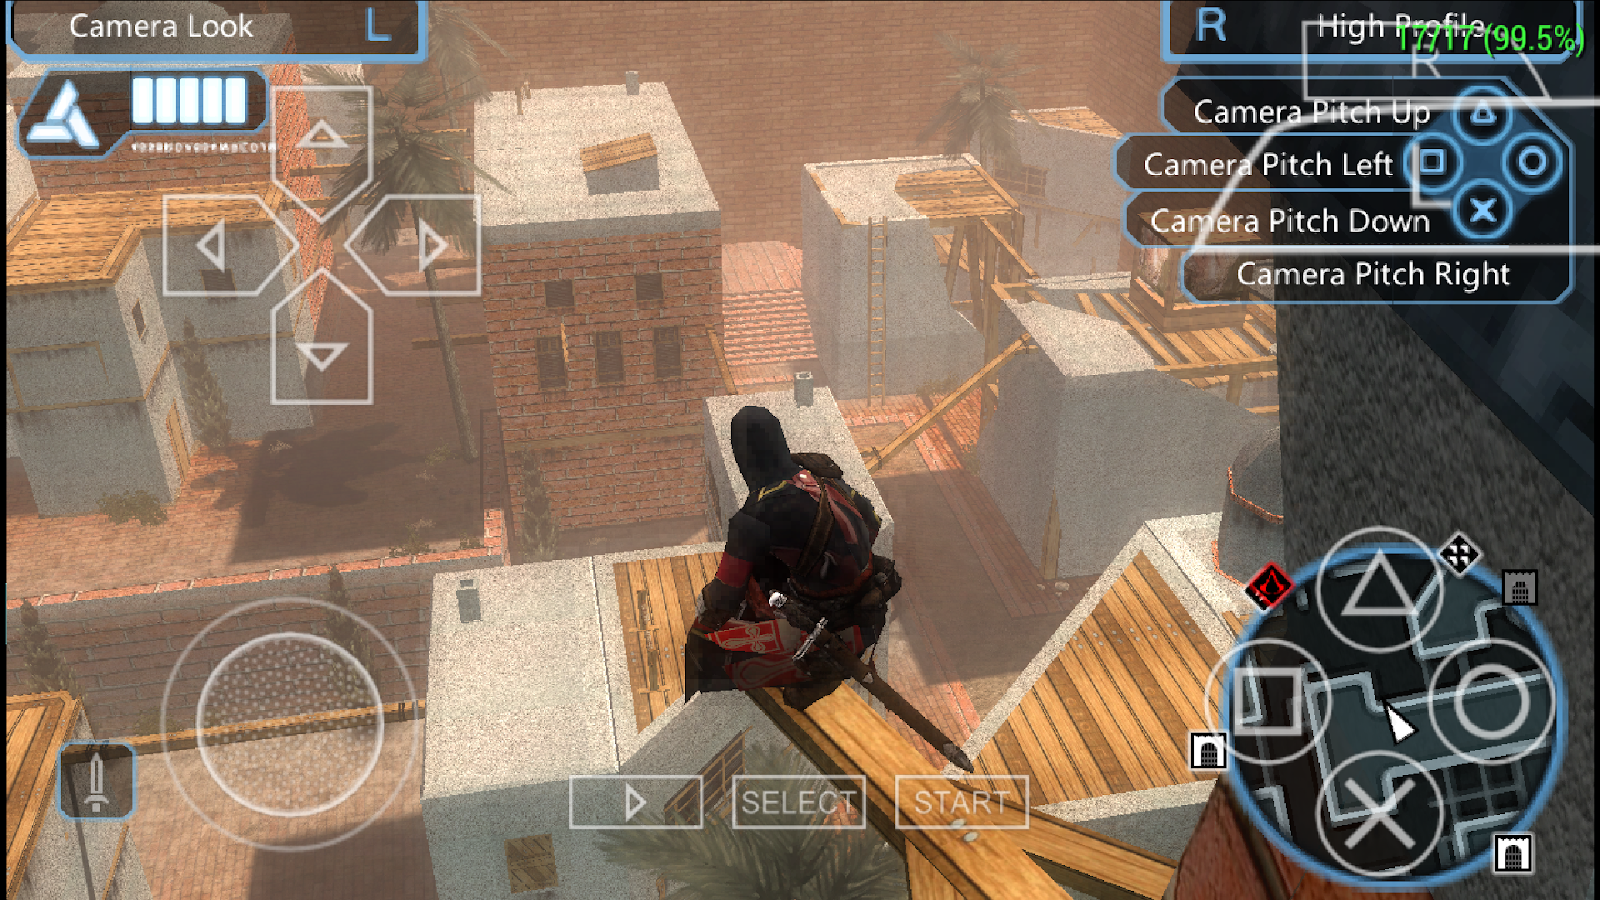 Mod For Noobs Assassin S Creed Bloodlines Hd Mod New Version Ppsspp Android Highly Compressed File Download Tutorials